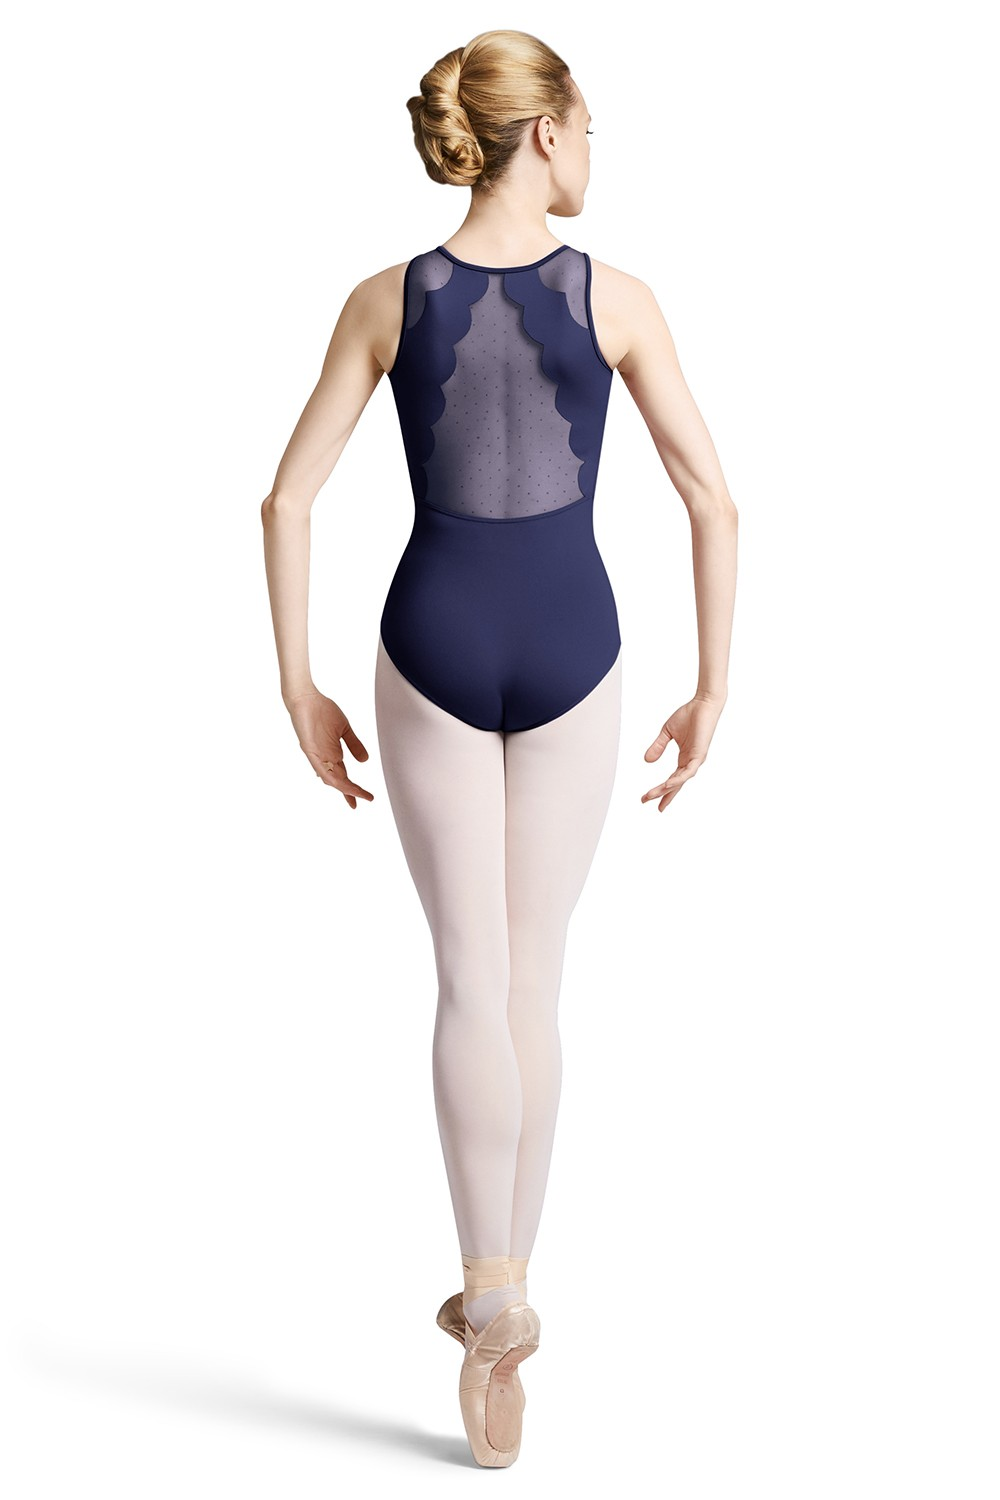 Aditi - Tween Children's Dance Leotards